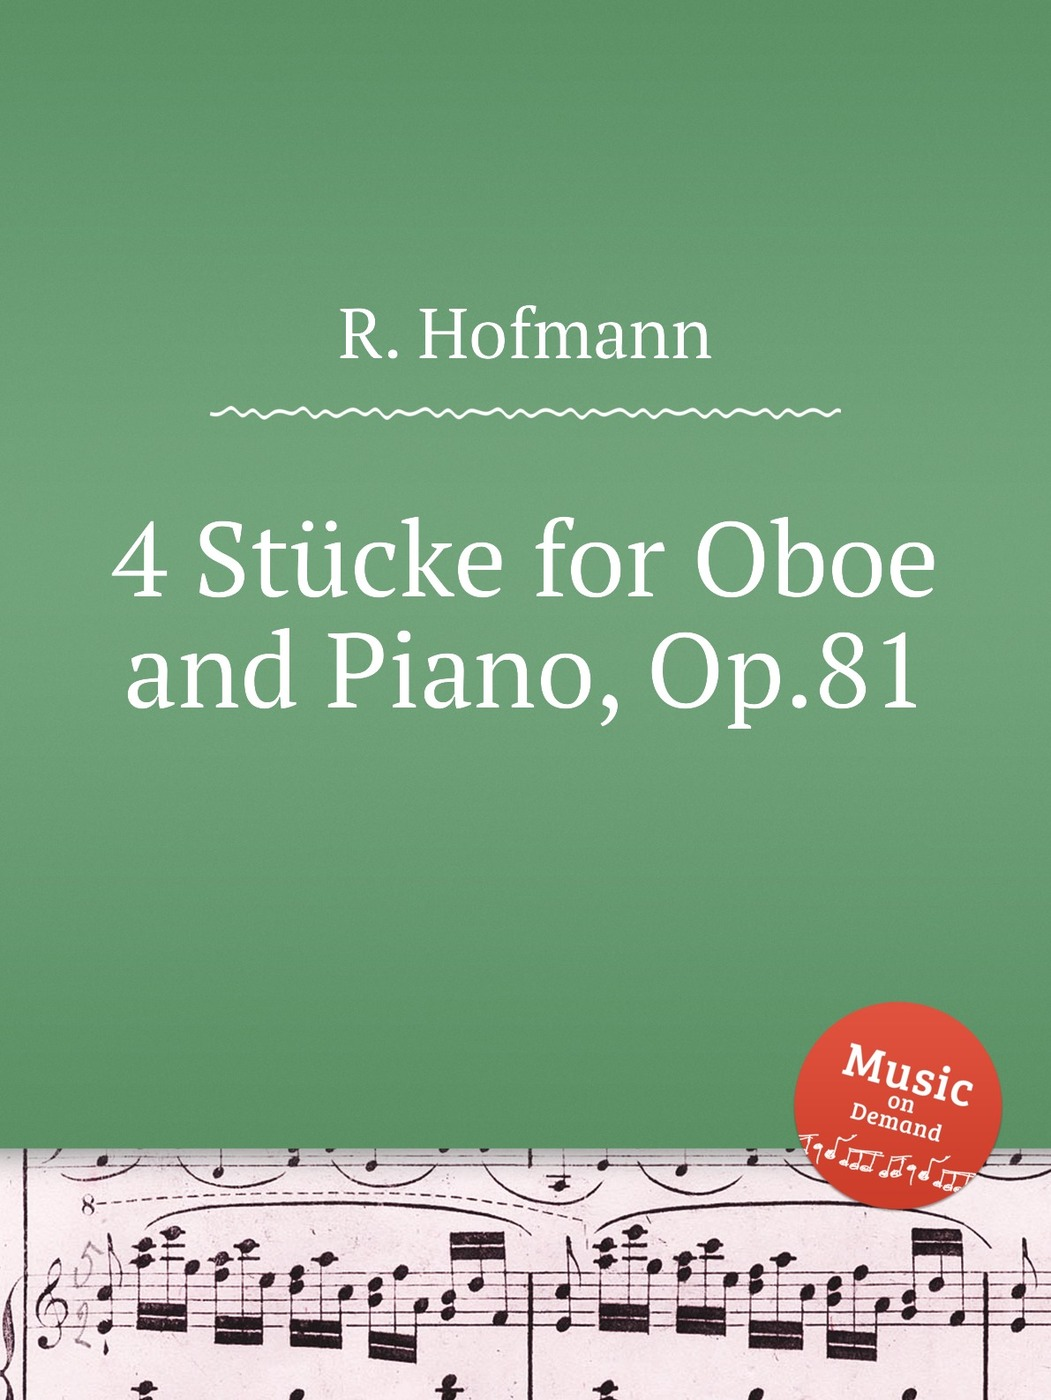 4 Stucke for Oboe and Piano, Op.81